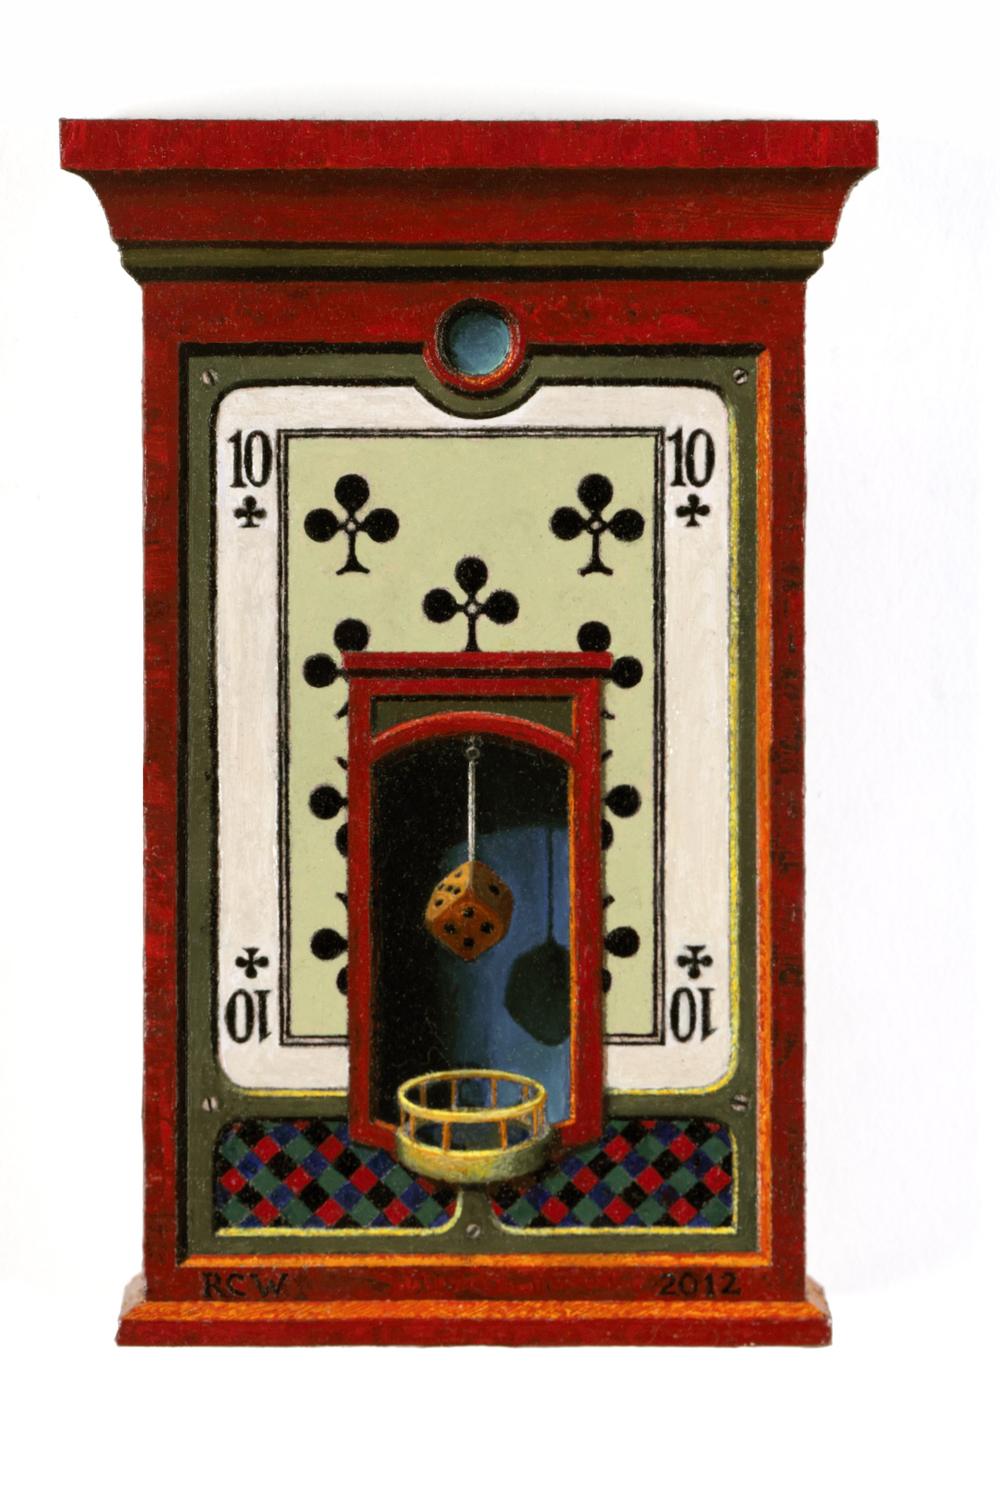 """Dix de Trèfles"" (ten of clubs)            Richard Whitten, 2012        oil on wood panel        6"" x 4"""